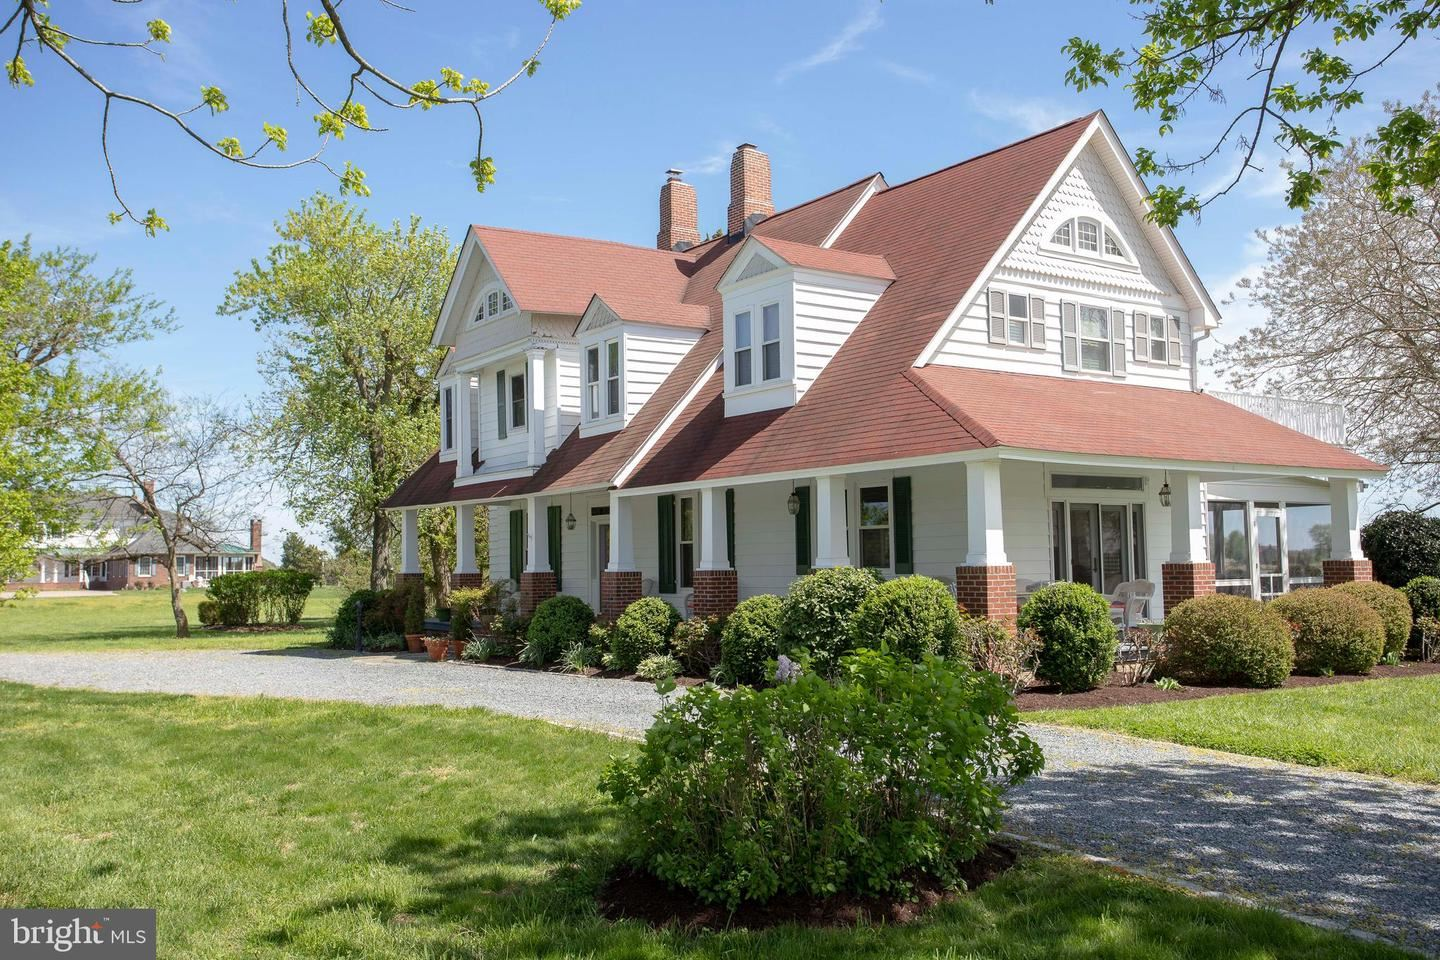 Photo of 1713 TOWN POINT RD, CAMBRIDGE, MD 21613 (MLS # MDDO123674)